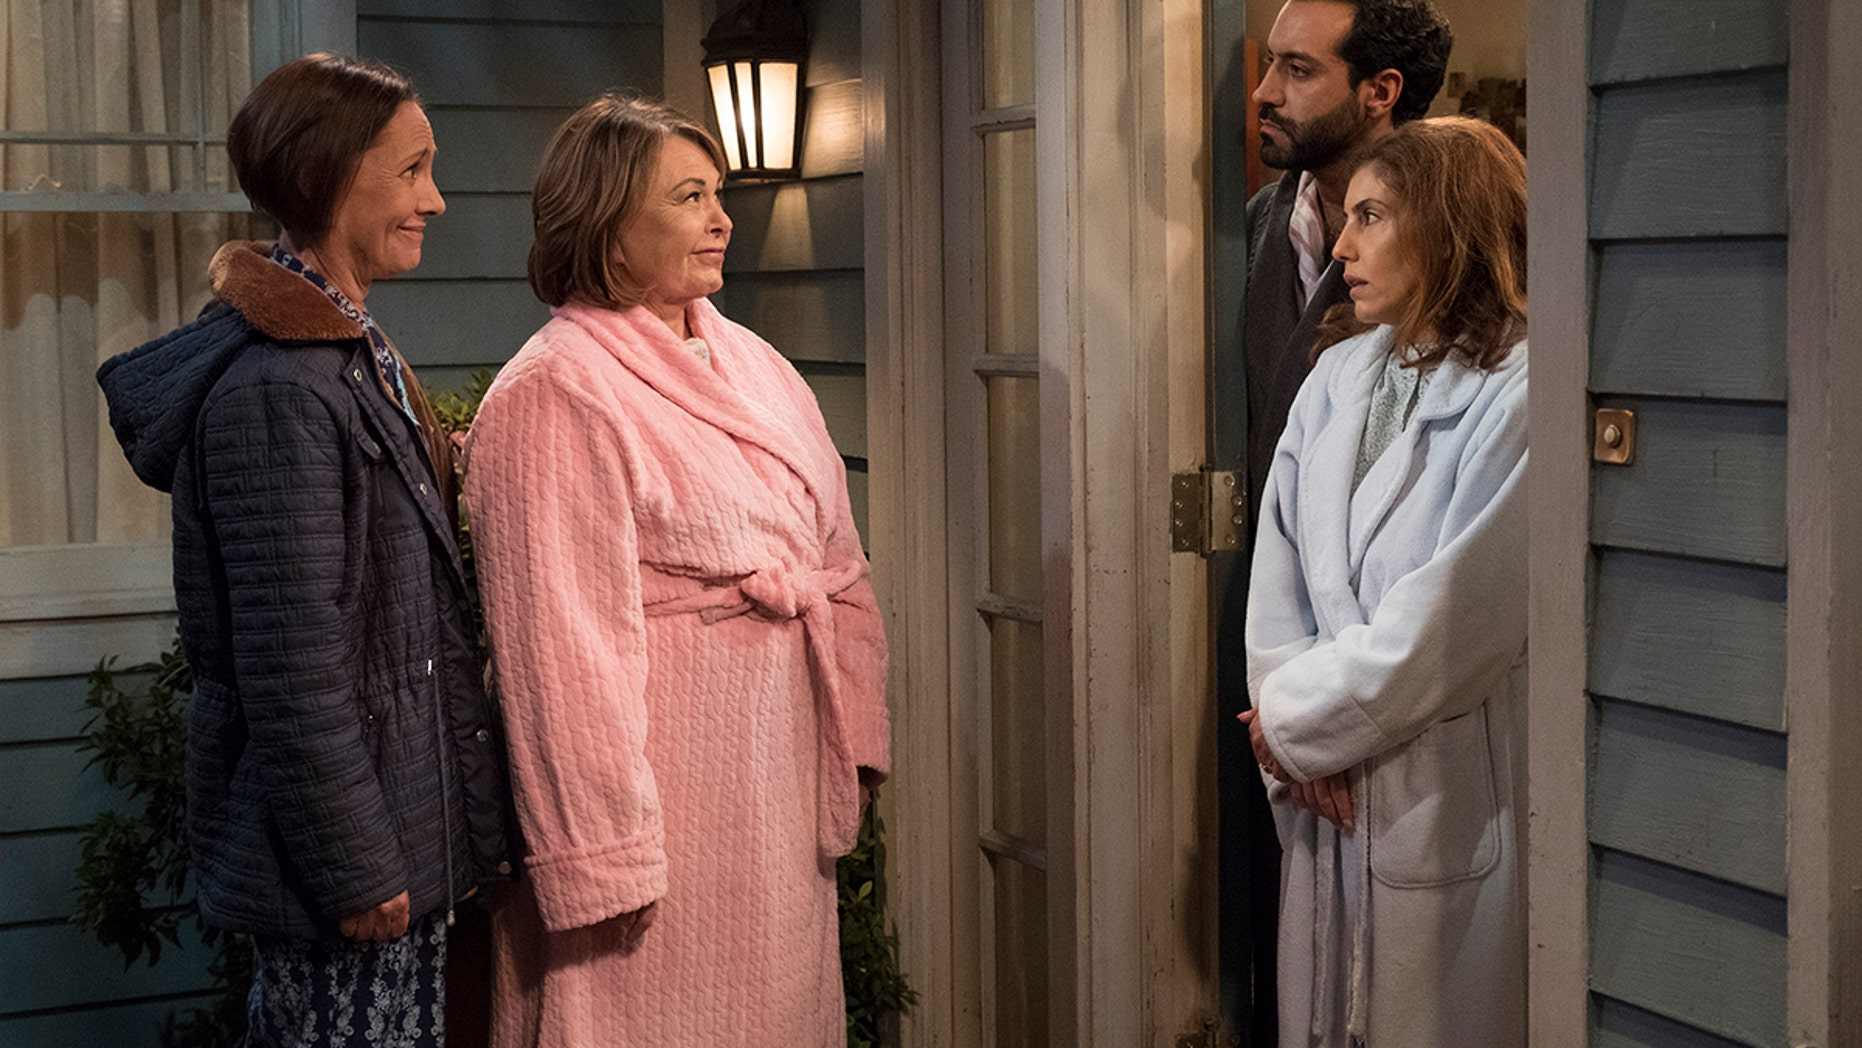 """ROSEANNE - """"Go Cubs"""" - The Conners can't pay their Wi-Fi bill, so they befriend their new neighbors to use the internet for Mary to Skype with mom Geena, who is stationed in Afghanistan. Meanwhile, Dan loses an important job and D.J. admits post-military life has been hard, so they come up with a plan to make extra money, on the seventh episode of the revival of """"Roseanne,"""" TUESDAY, MAY 8 (8:00-8:30 p.m. EDT), on The ABC Television Network. (ABC/Adam Rose)SARA GILBERT, ROSEANNE BARR, ALAIN WASHNEVSKY, ANNE BEDIAN"""